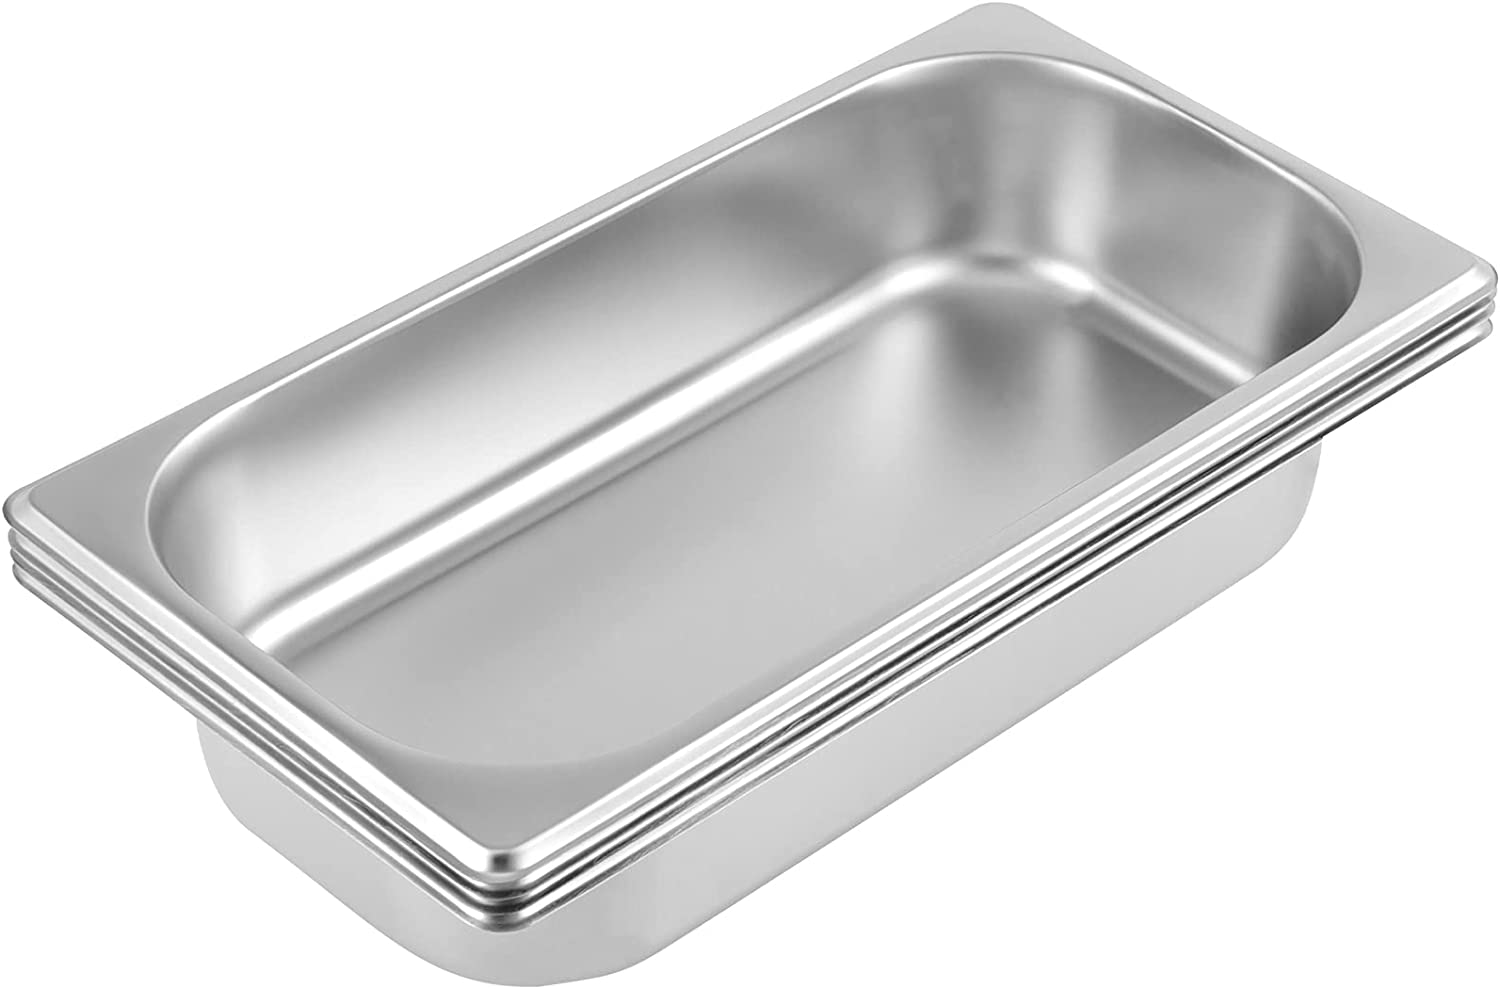 HAKZEON 4 Packs 13 x 10 x 4 Inches Stainless Steel Food Pan, Steam Table Water Pan, Catering Supplies Hotel Pans for Food Warmer, Buffet Server, Restaurants, Parties, Events, Silver